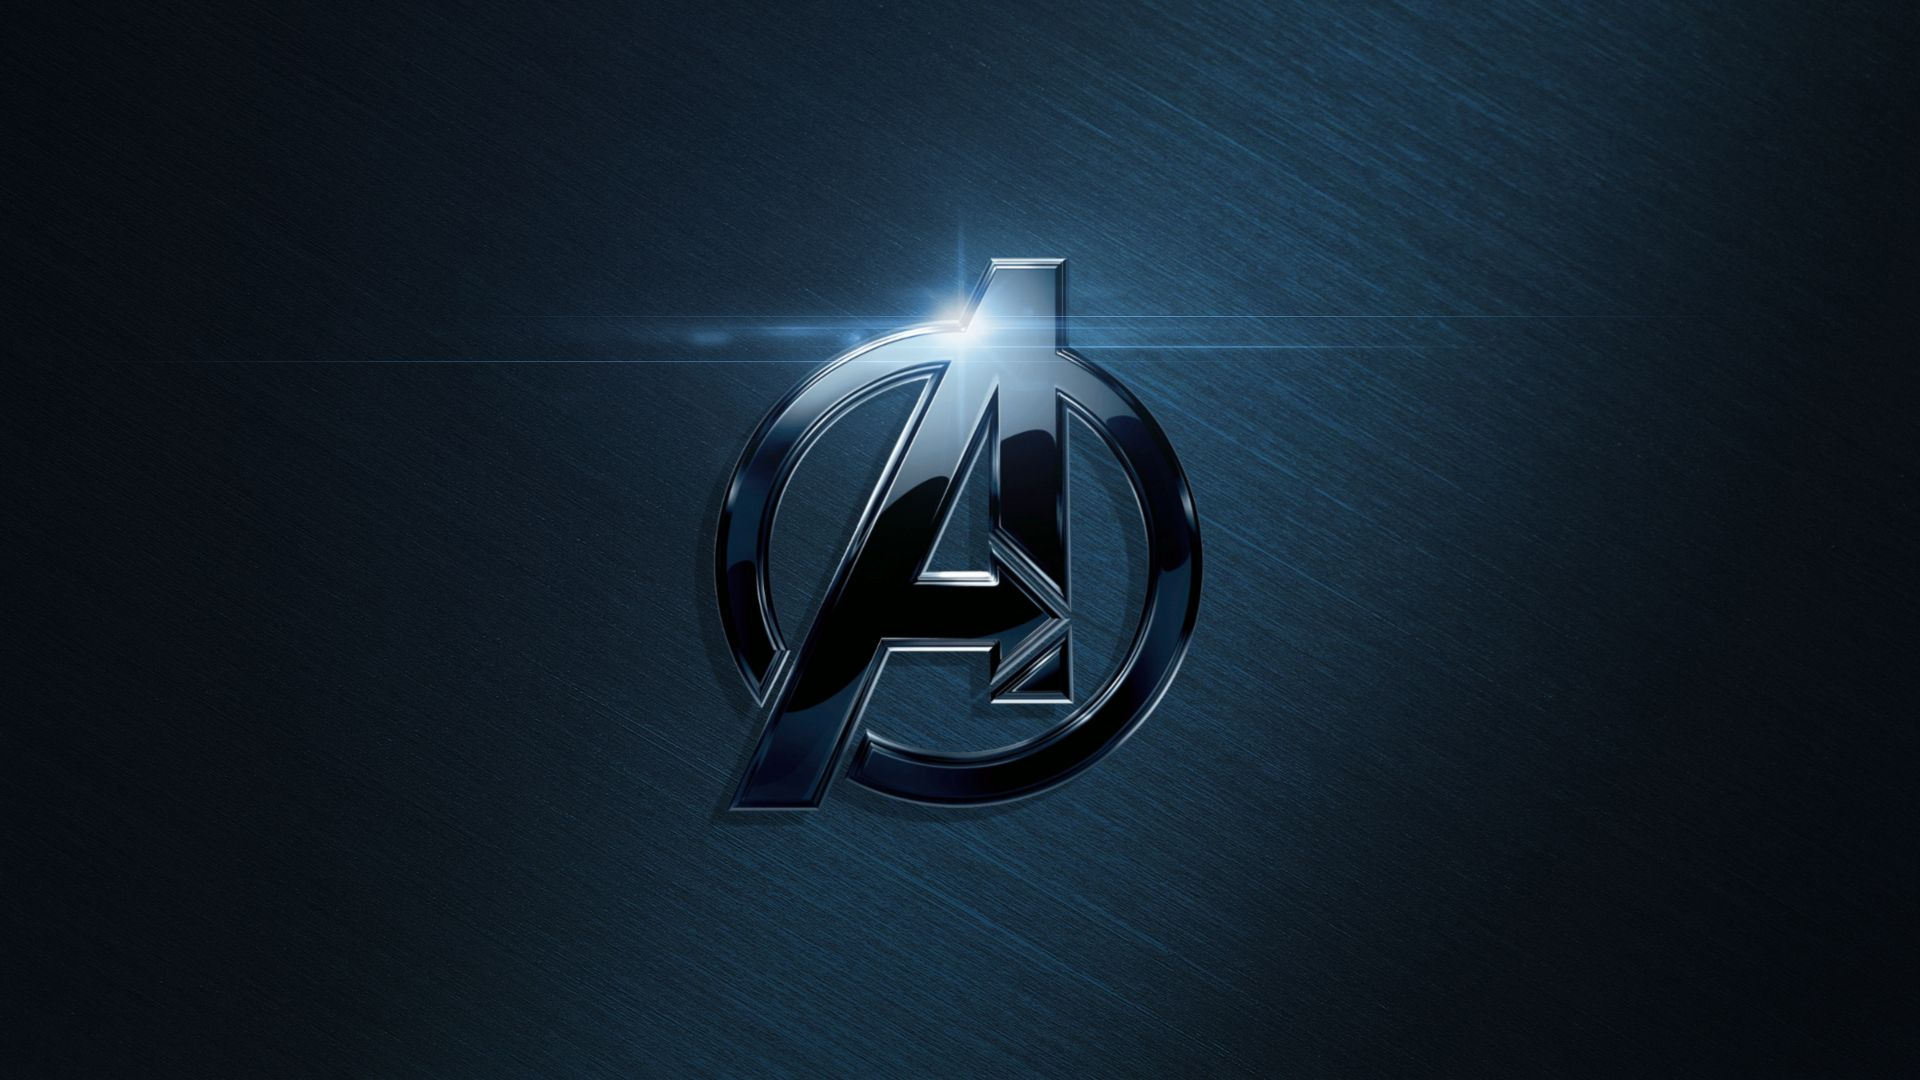 The Avengers Wallpapers, Movie, Best HD 1080p 17 | My nerd is showing | Avengers wallpaper, Hero ...